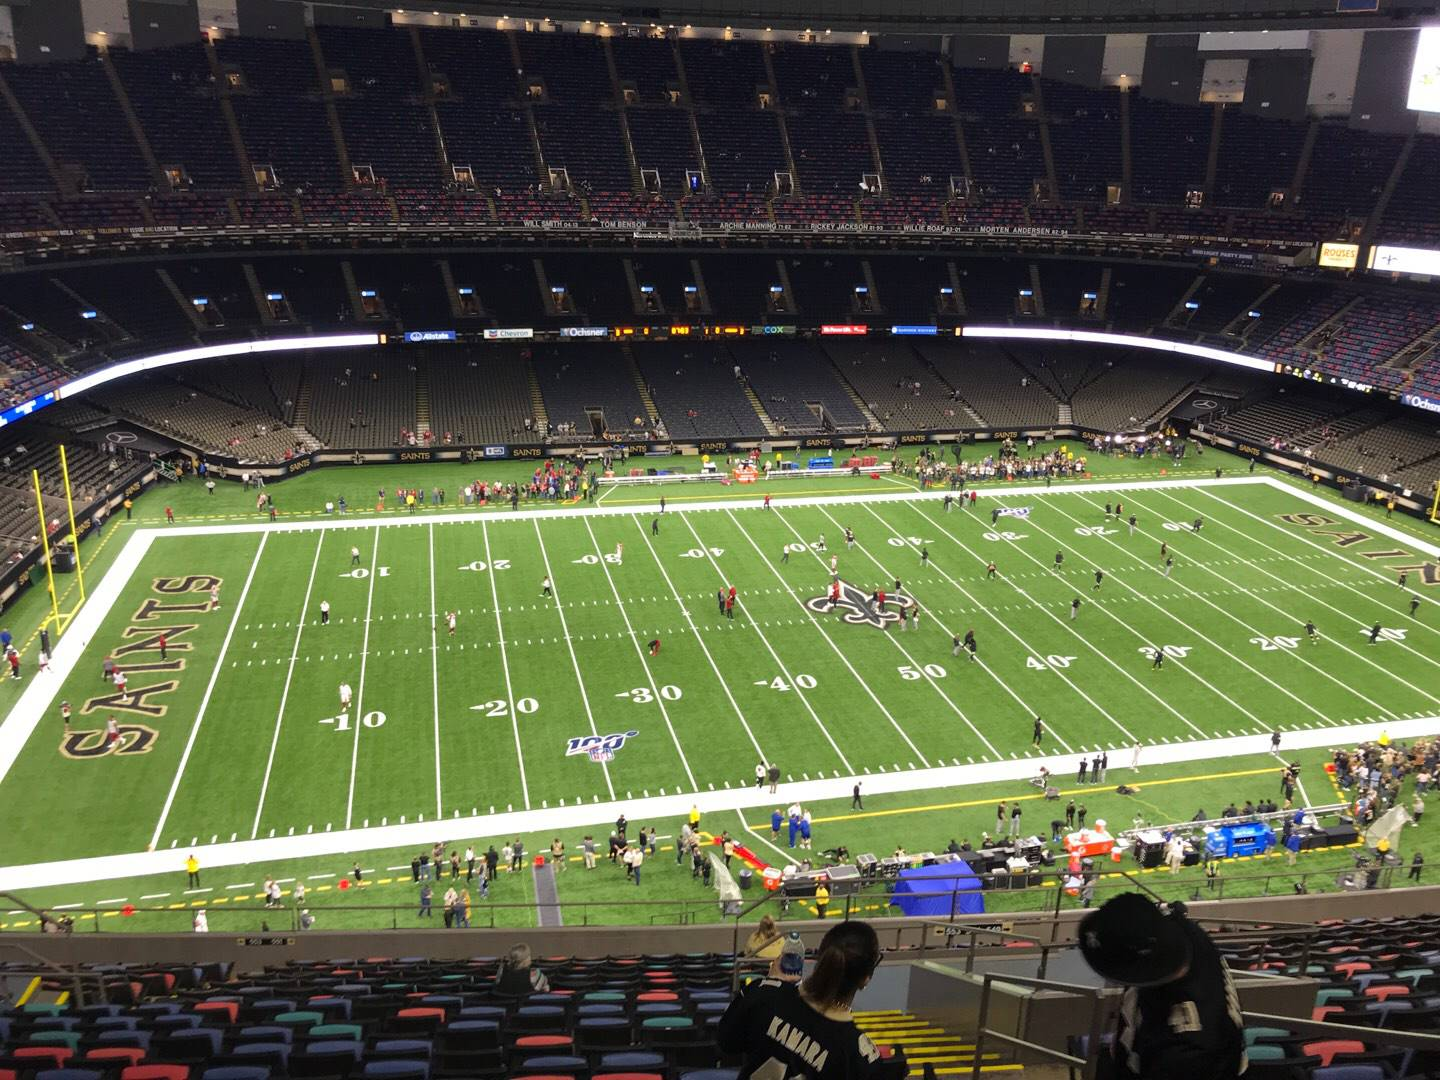 Mercedes-Benz Superdome Section 643 Row 20 Seat 4